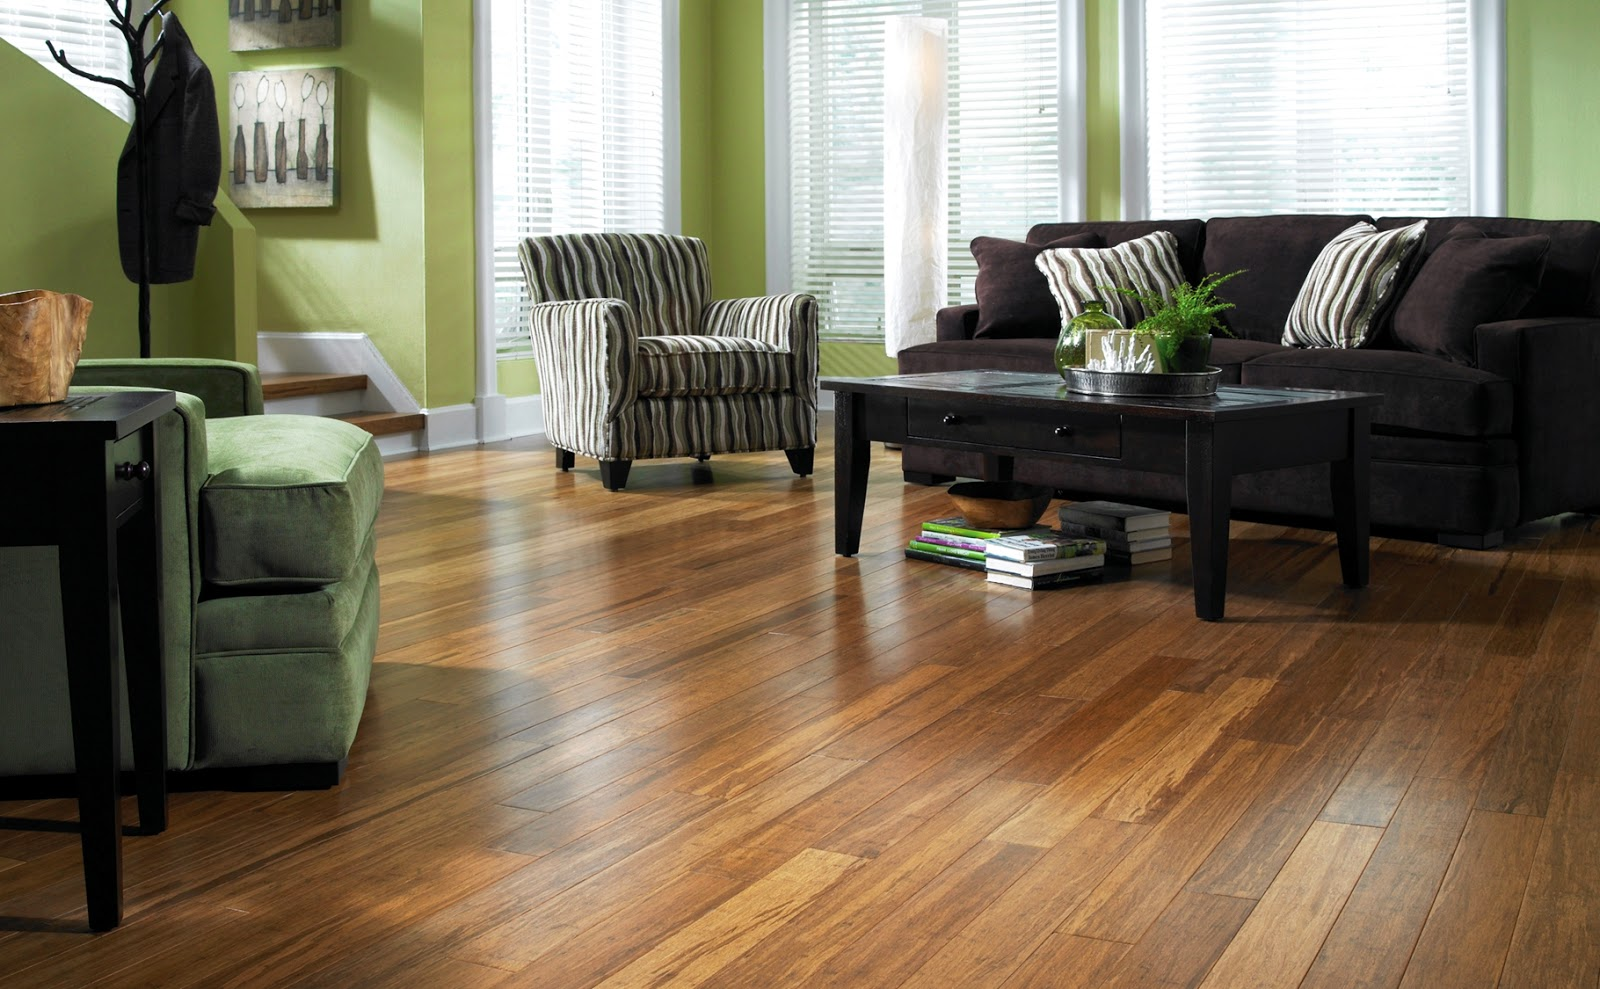 Most Inexpensive Types of Flooring